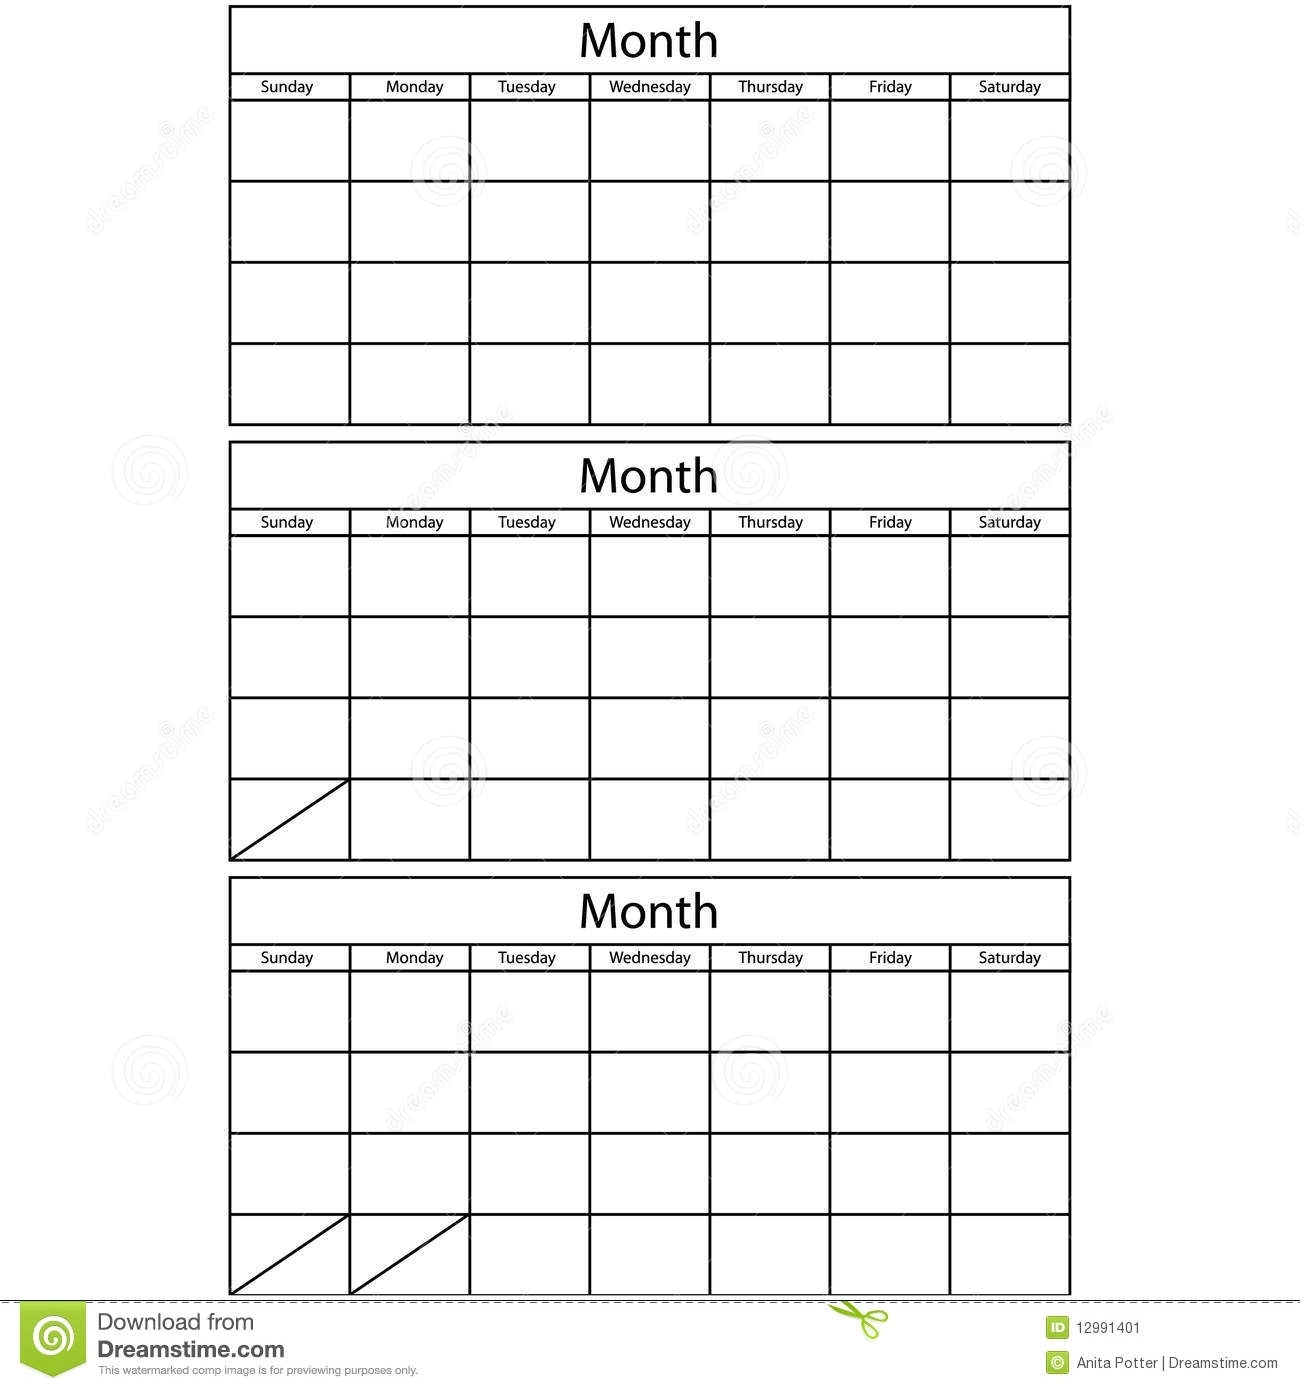 Blank Calendar 3 Templates Stock Vector. Illustration Of Month in Three Month Single Page Calendar